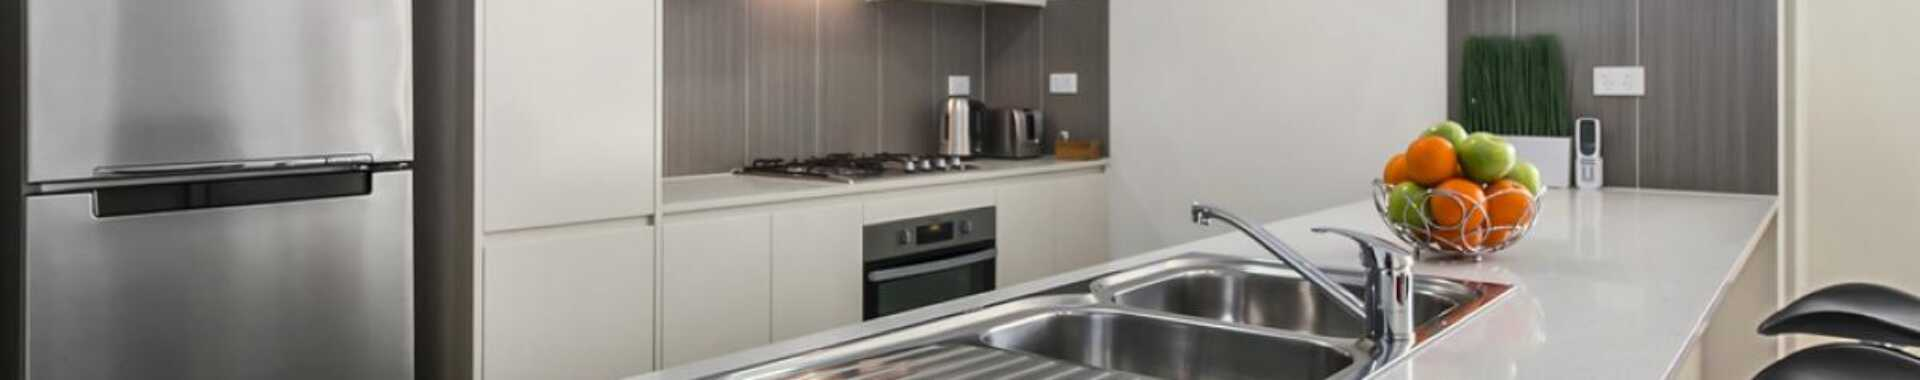 Liverpool 1 bed corporate apartment kitchen